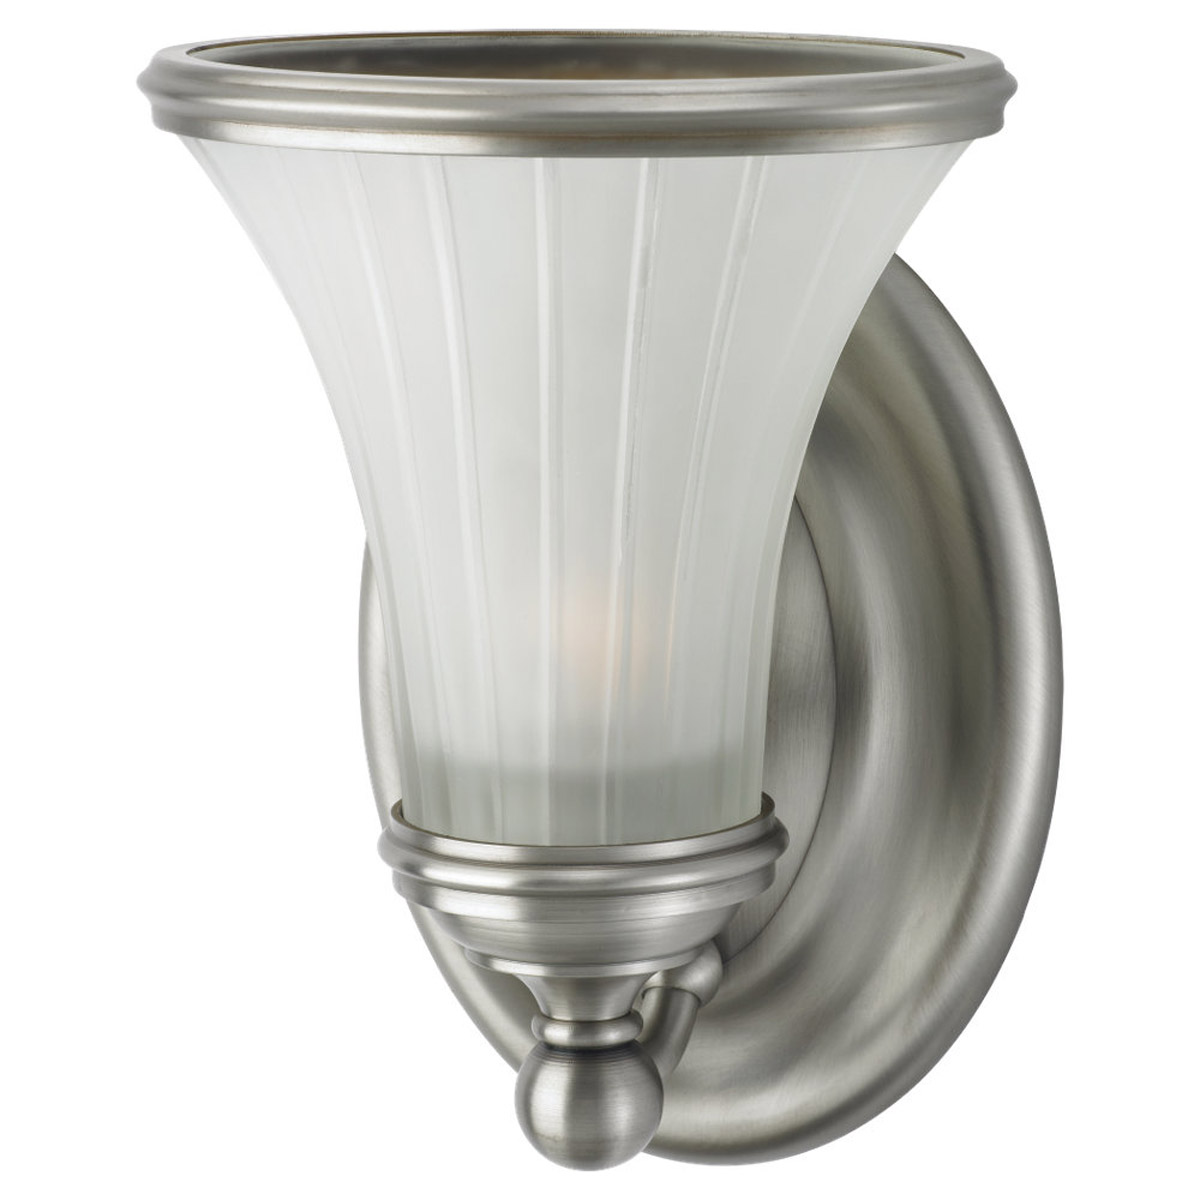 Sea Gull Lighting Torry 1 Light Wall / Bath / Vanity in Antique Brushed Nickel / Satin Etched 94183-965